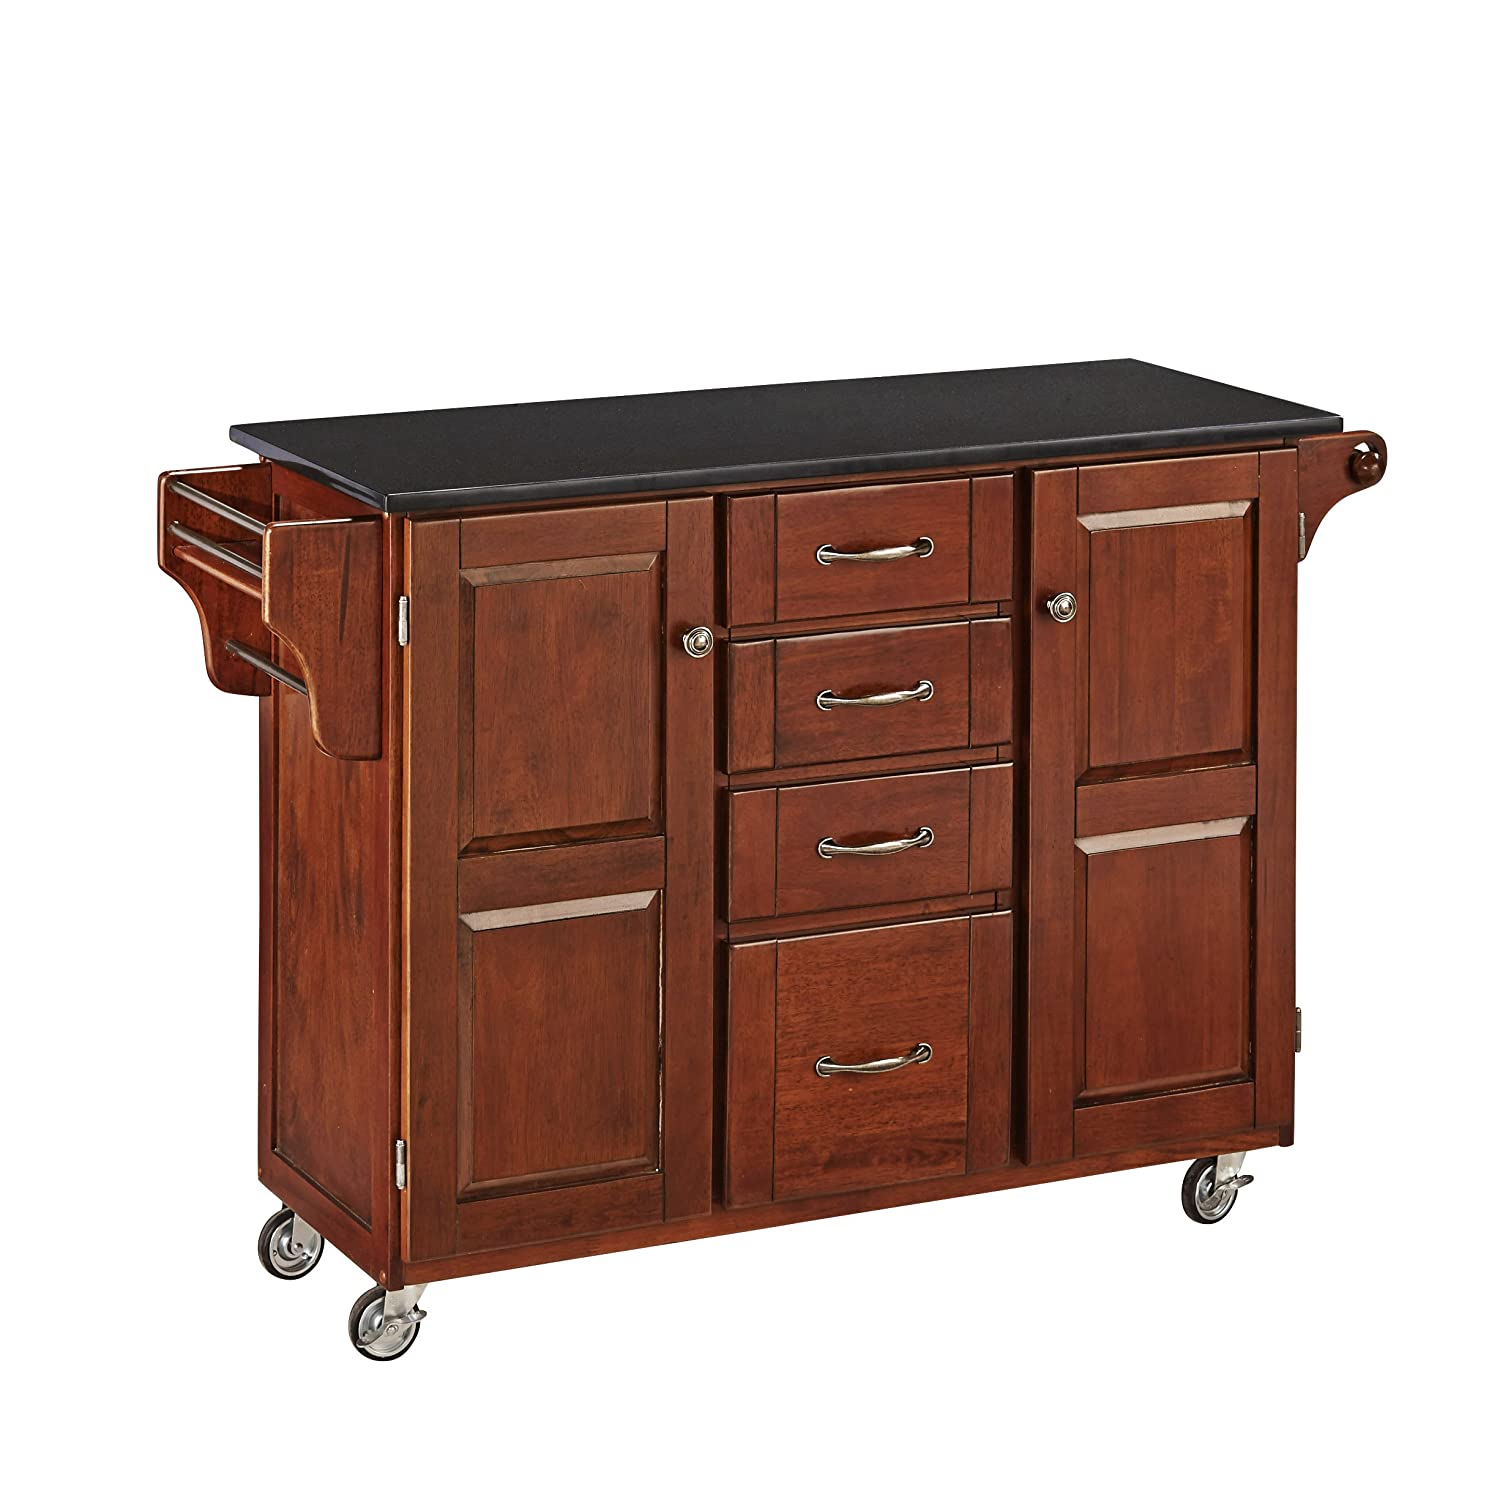 Create-a-Cart Medium Cherry 2 Door Cabinet Kitchen Cart with Black Granite Top by Home Styles